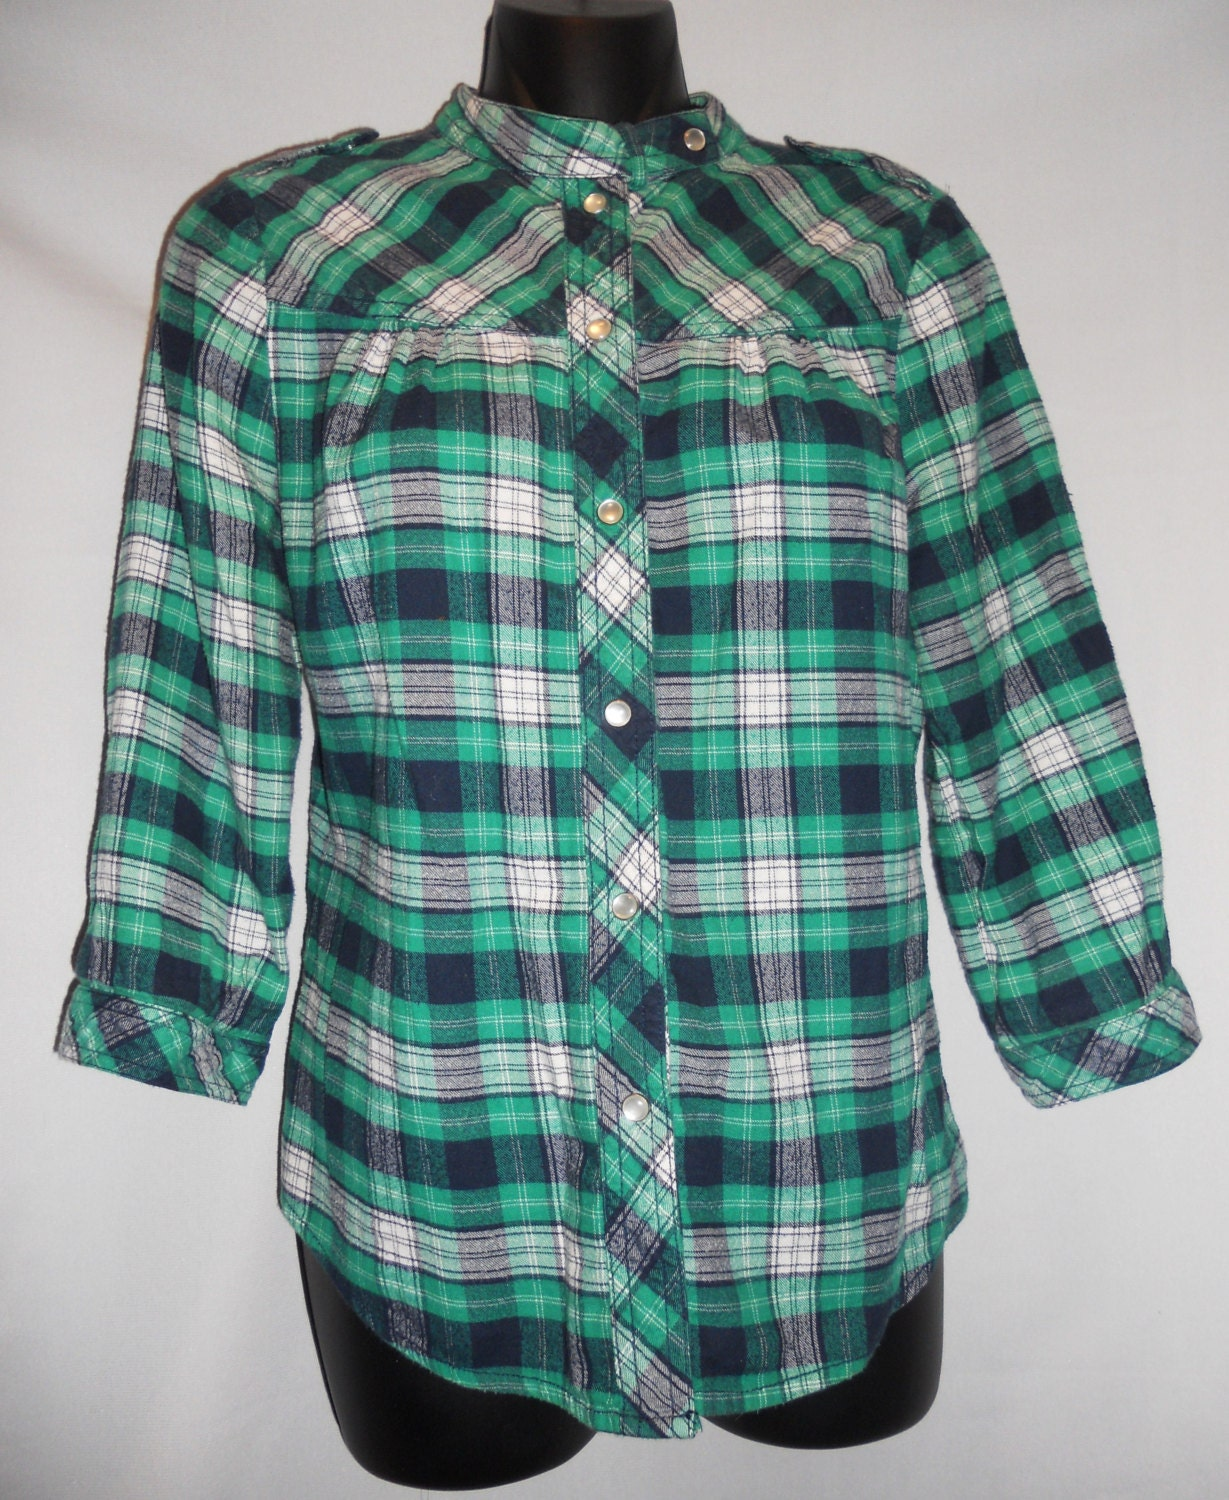 Vintage 80s plaid flannel womens shirt green by for Womens green checked shirt